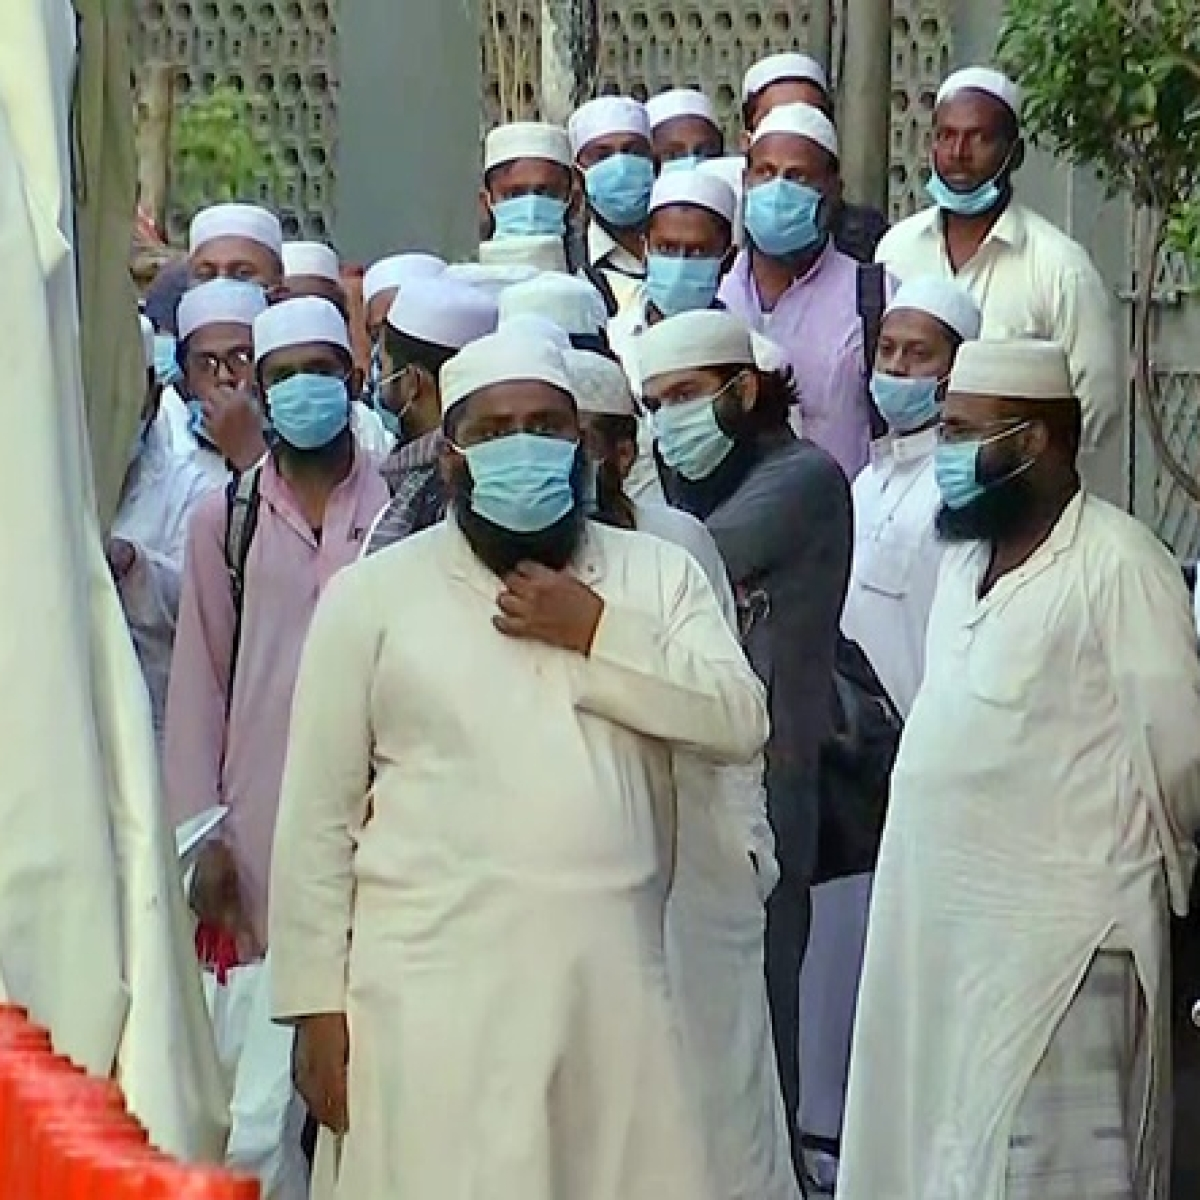 Two Tablighi Jamaat members defecate in corridor at quarantine centre in Delhi, FIR registered